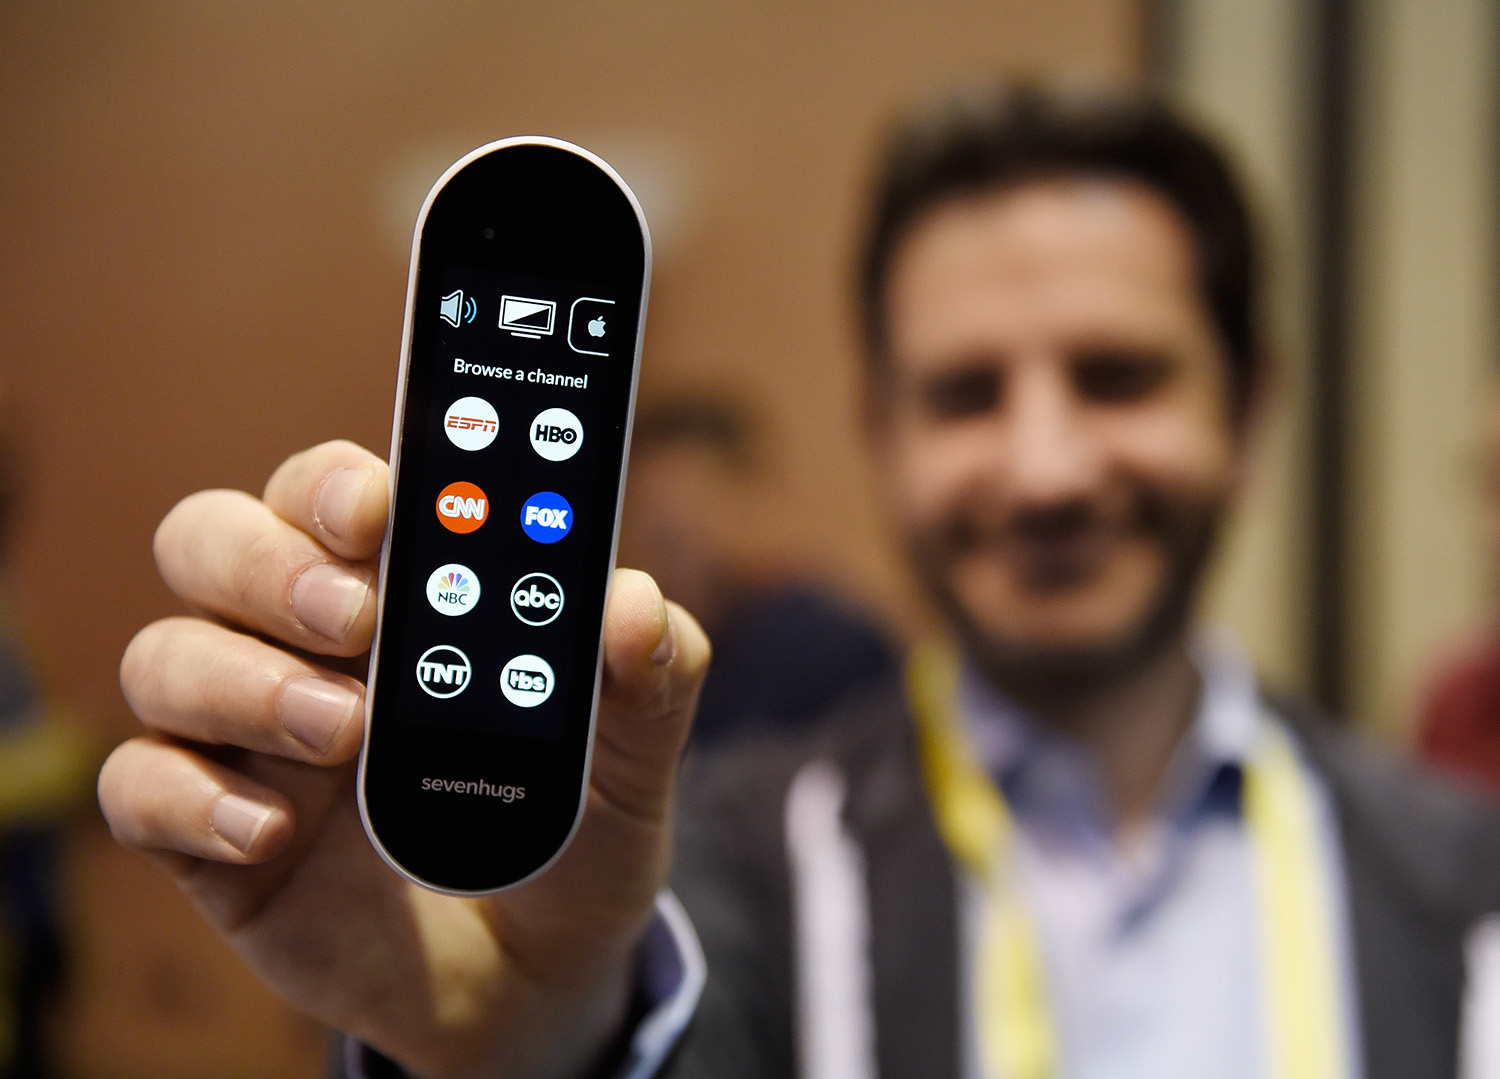 Simon Tchedikian displays a Sevenhugs smart remote during a press event for CES 2017 at the Mandalay Bay Convention Center on January 3, 2017 in Las Vegas, Nevada. The USD 299 device is designed as a universal remote to operate many household devices and is scheduled to be released in June 2017. CES, the world's largest annual consumer technology trade show, runs from January 5-8 and is expected to feature 3,800 exhibitors showing off their latest products and services to more than 165,000 attendees. (David Becker/Getty Images)